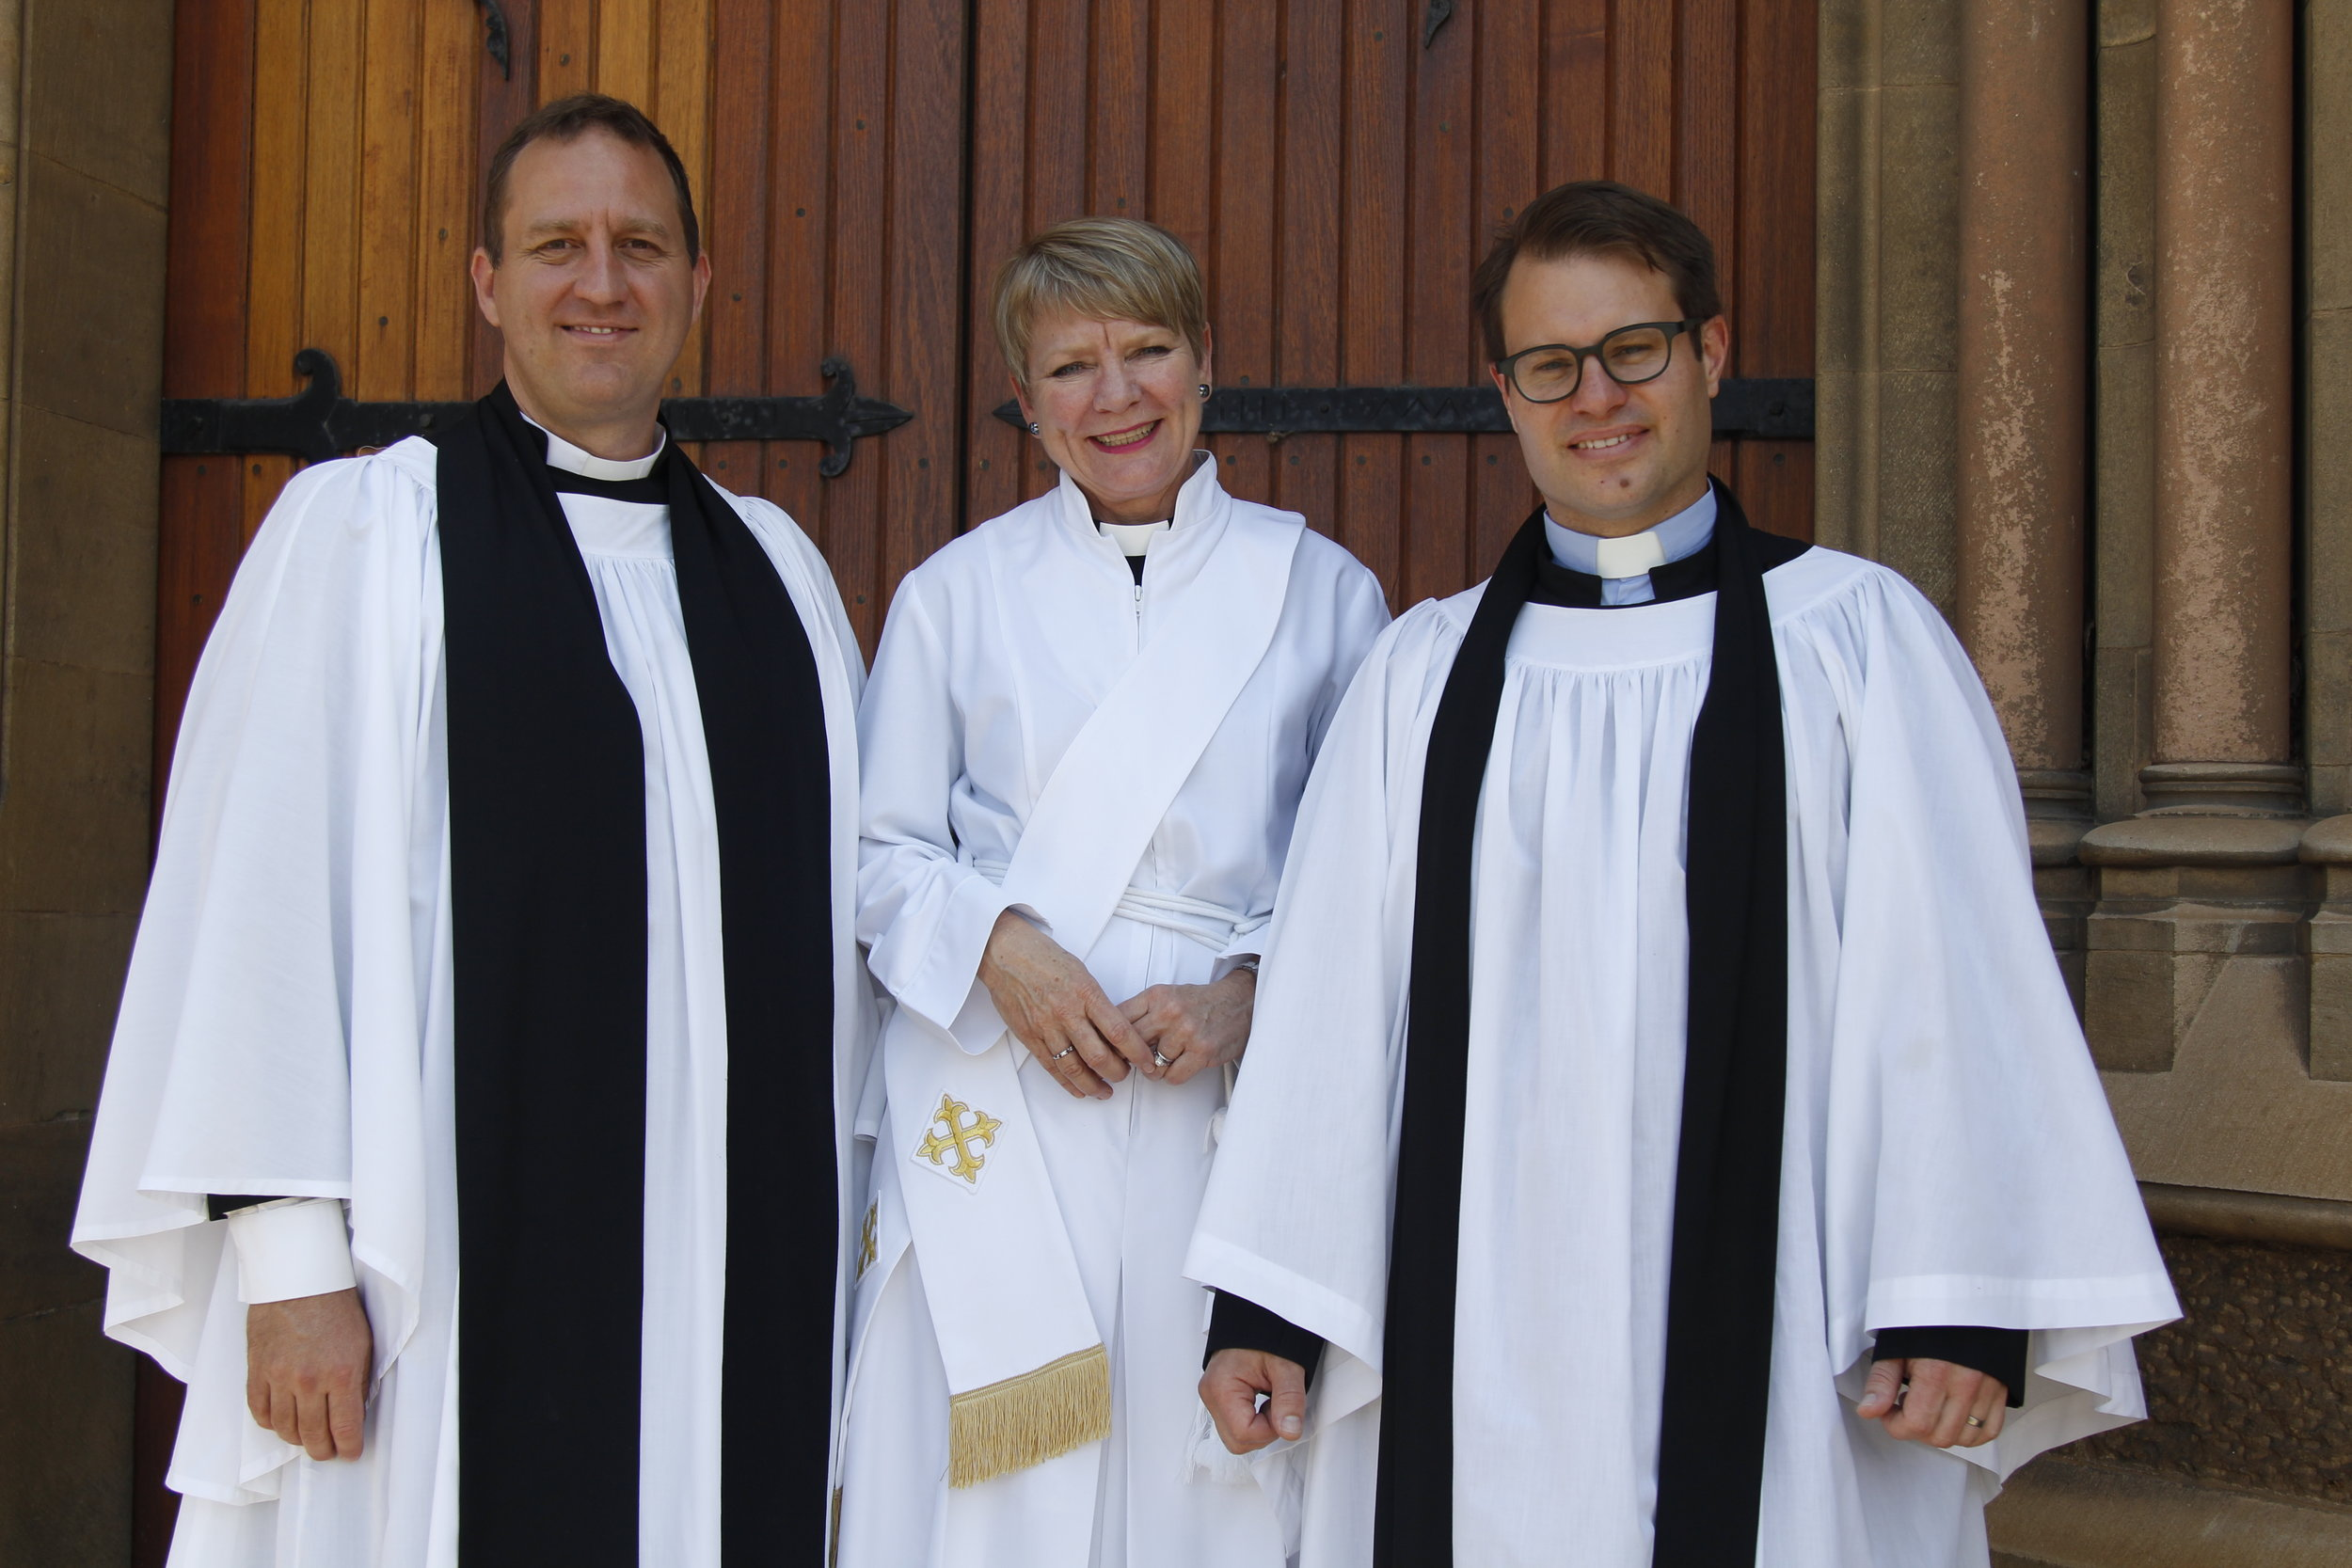 This years' Ordinands